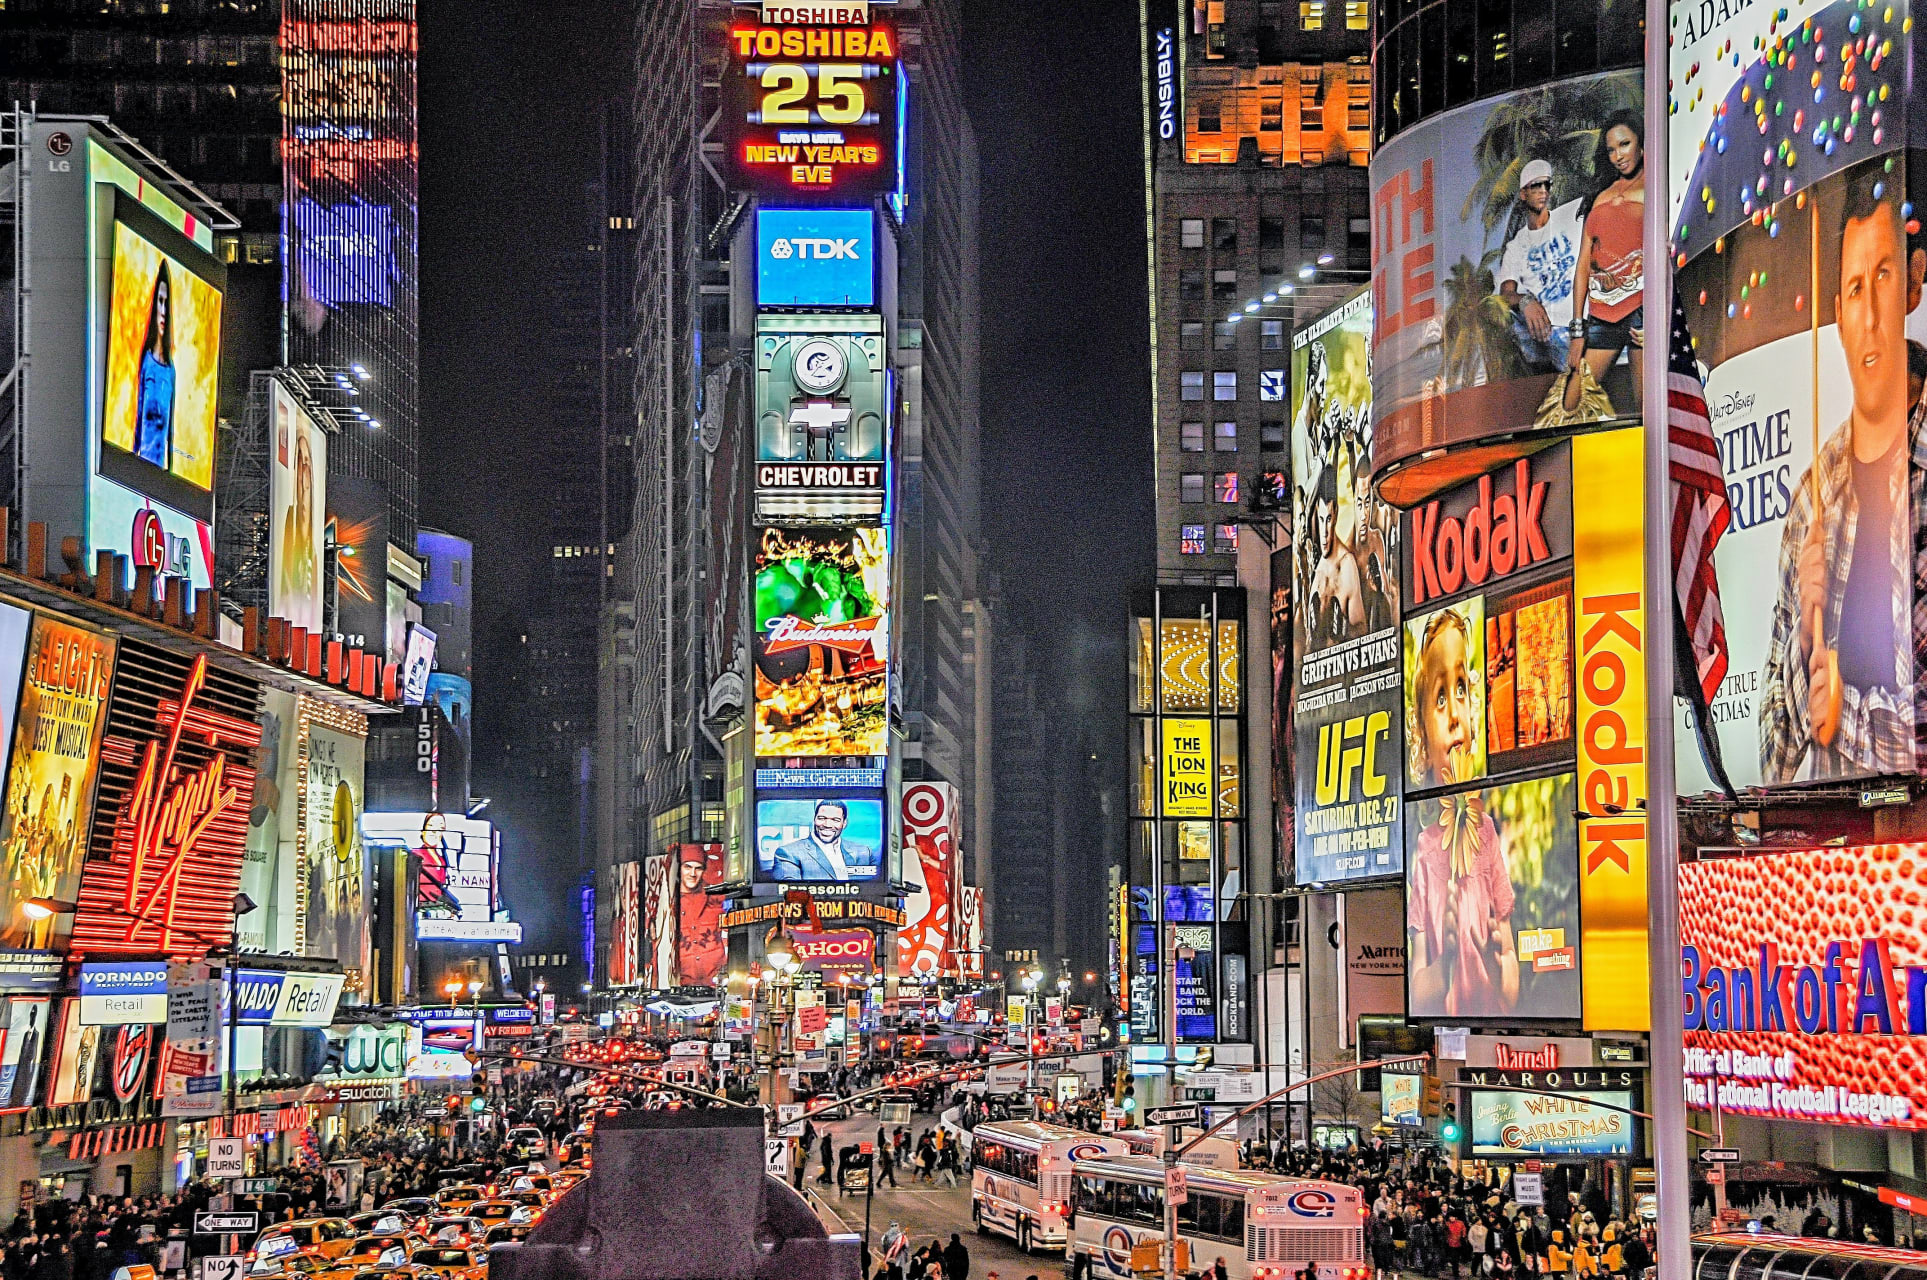 New York - The Heart of NYC: Times Square